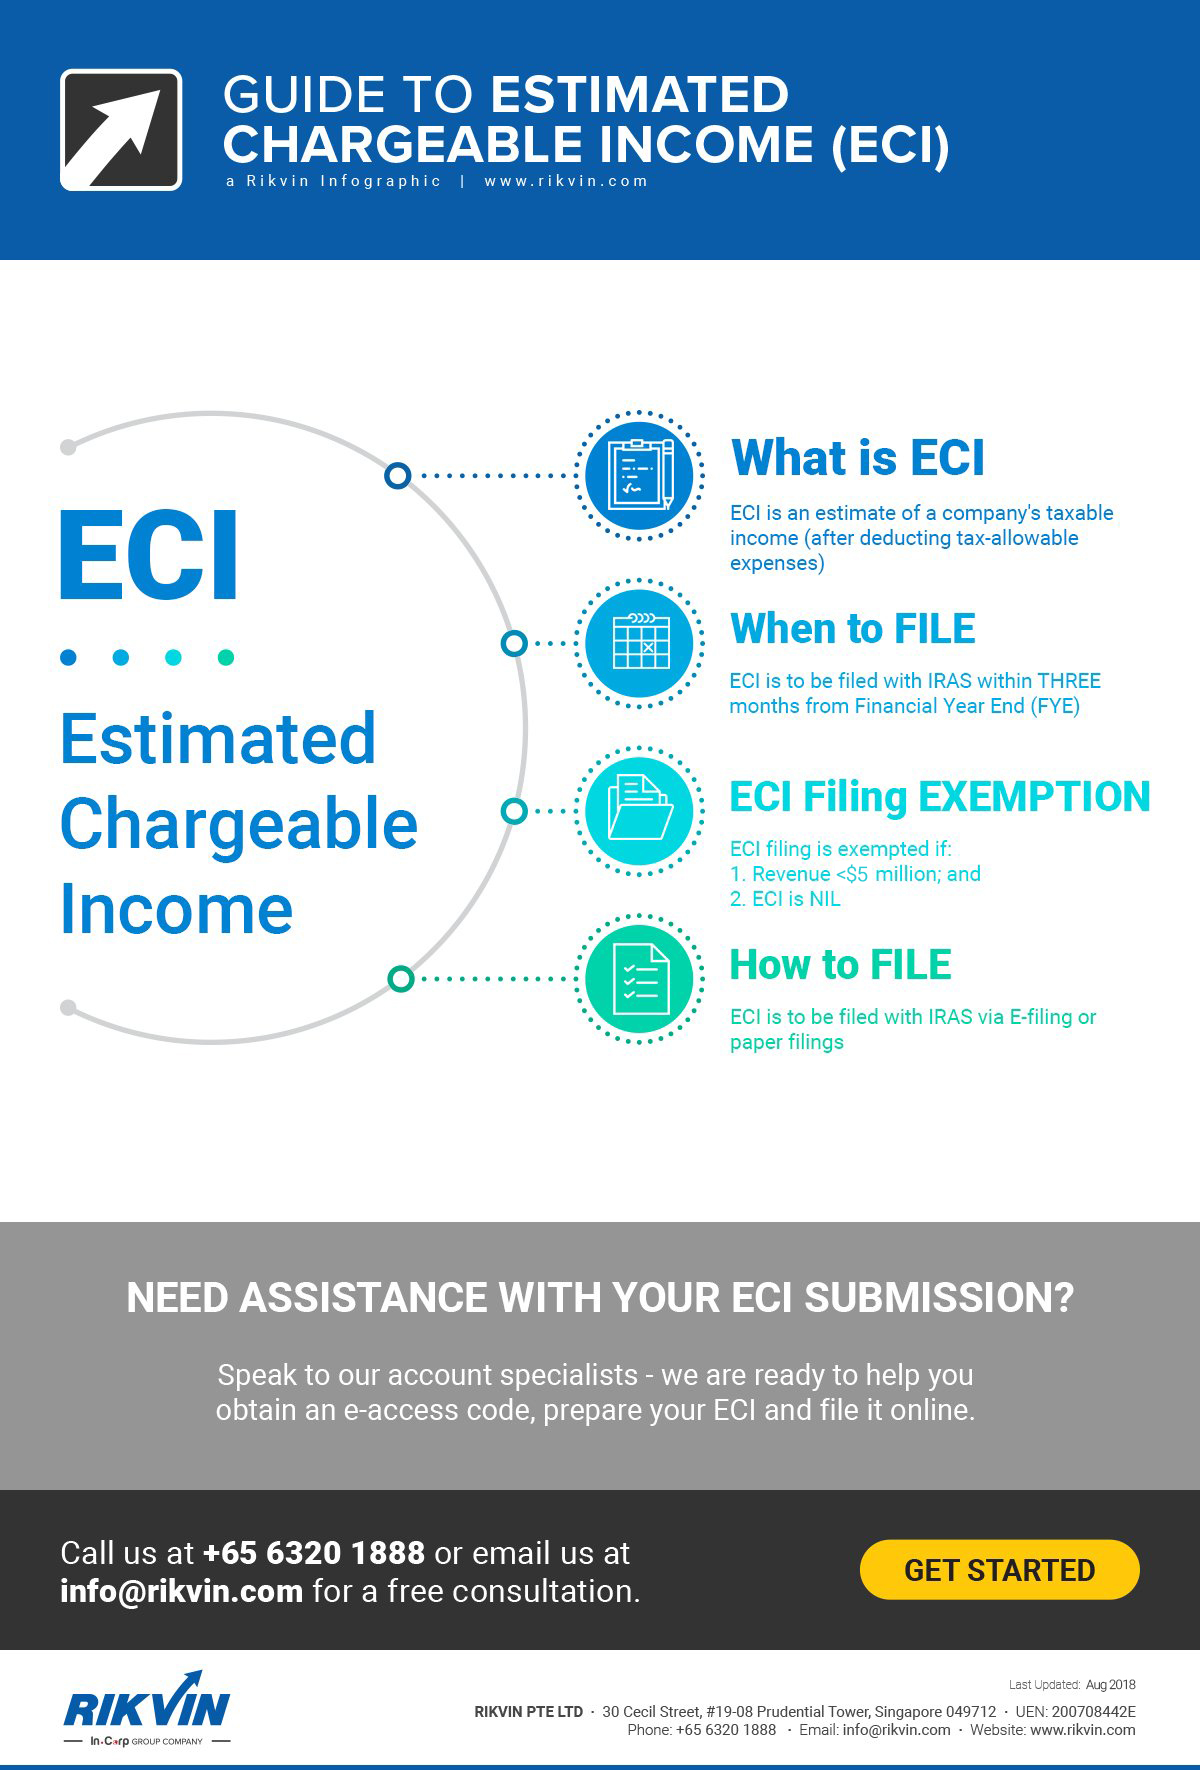 estimated-chargeable-income-eci-guide Guide to Estimated Chargeable Income (ECI)